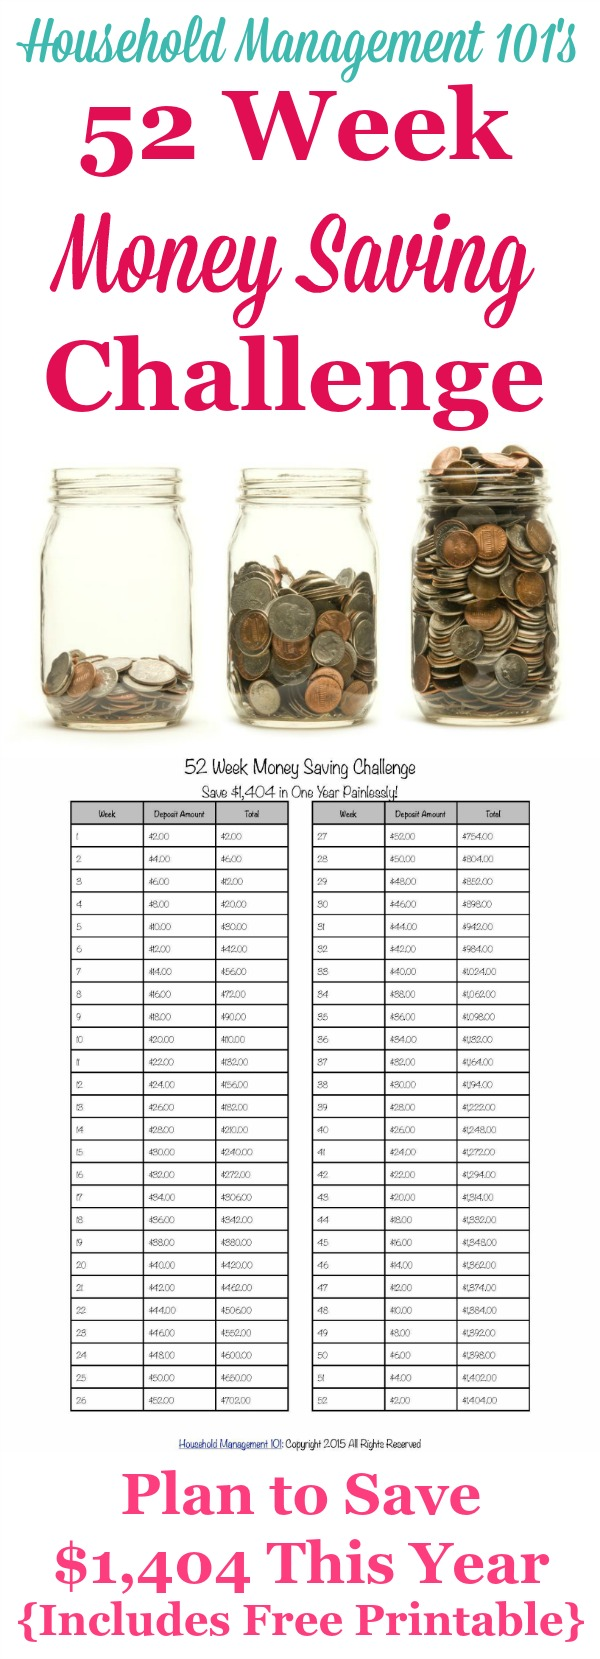 I'm taking Household Management 101's 52 Week Money Saving Challenge, which is a plan to save $1,404 painlessly over the course of a year. Includes a free printable!